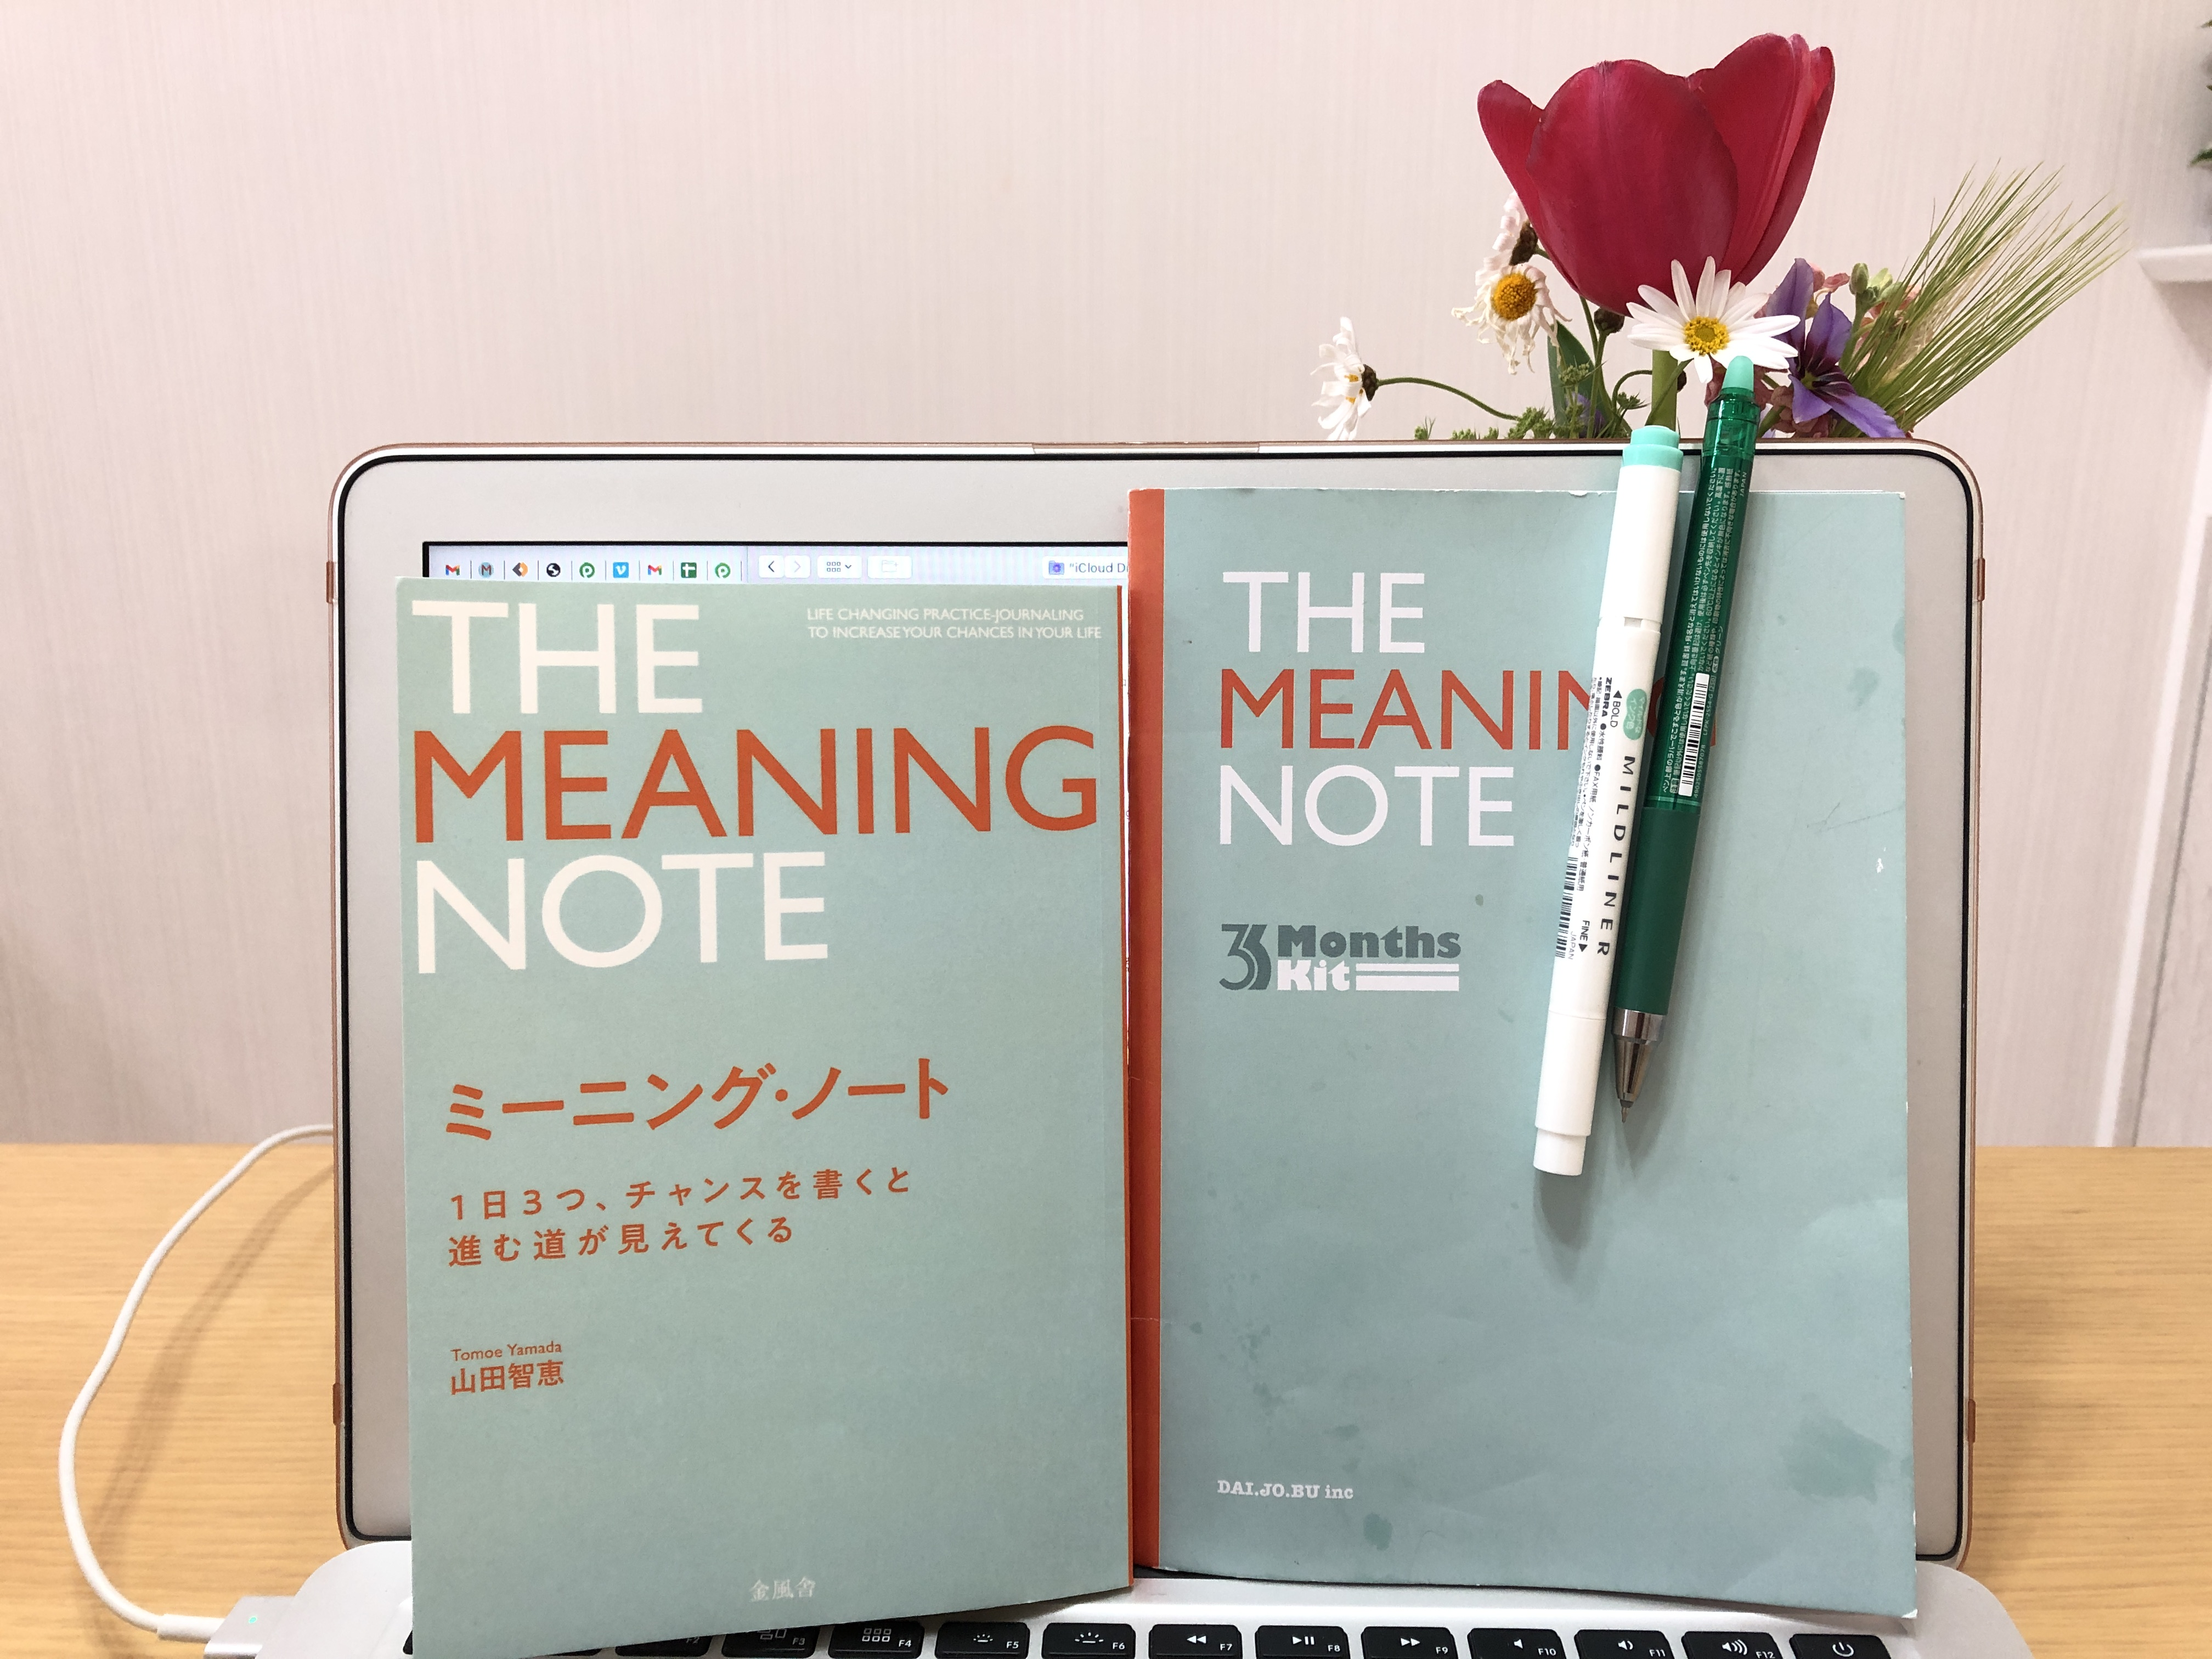 THE MEANING NOTE